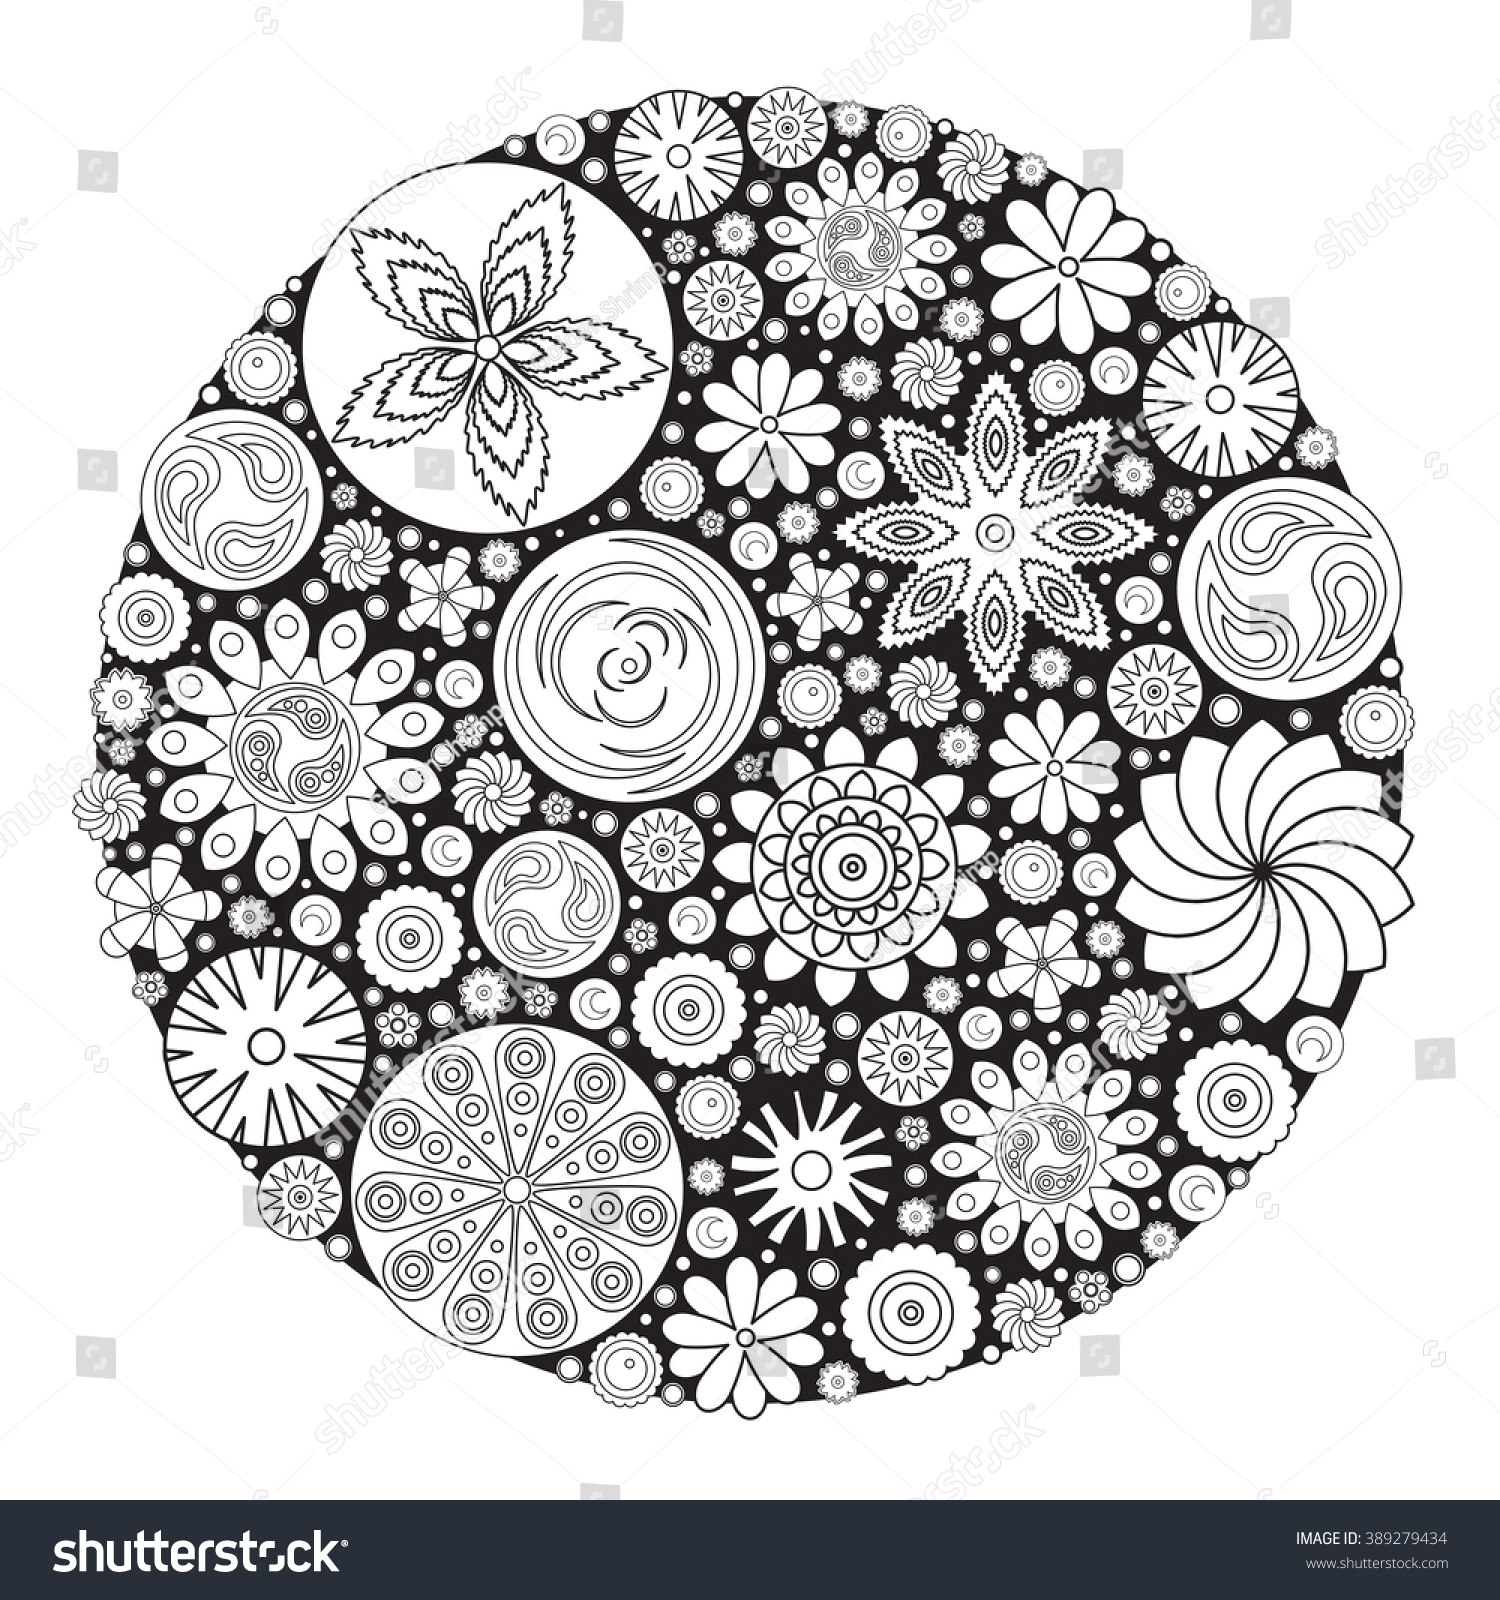 Coloring book grown up - Flower Design For Coloring Book For Grown Up An Adult Coloring Book Floral Drawing For